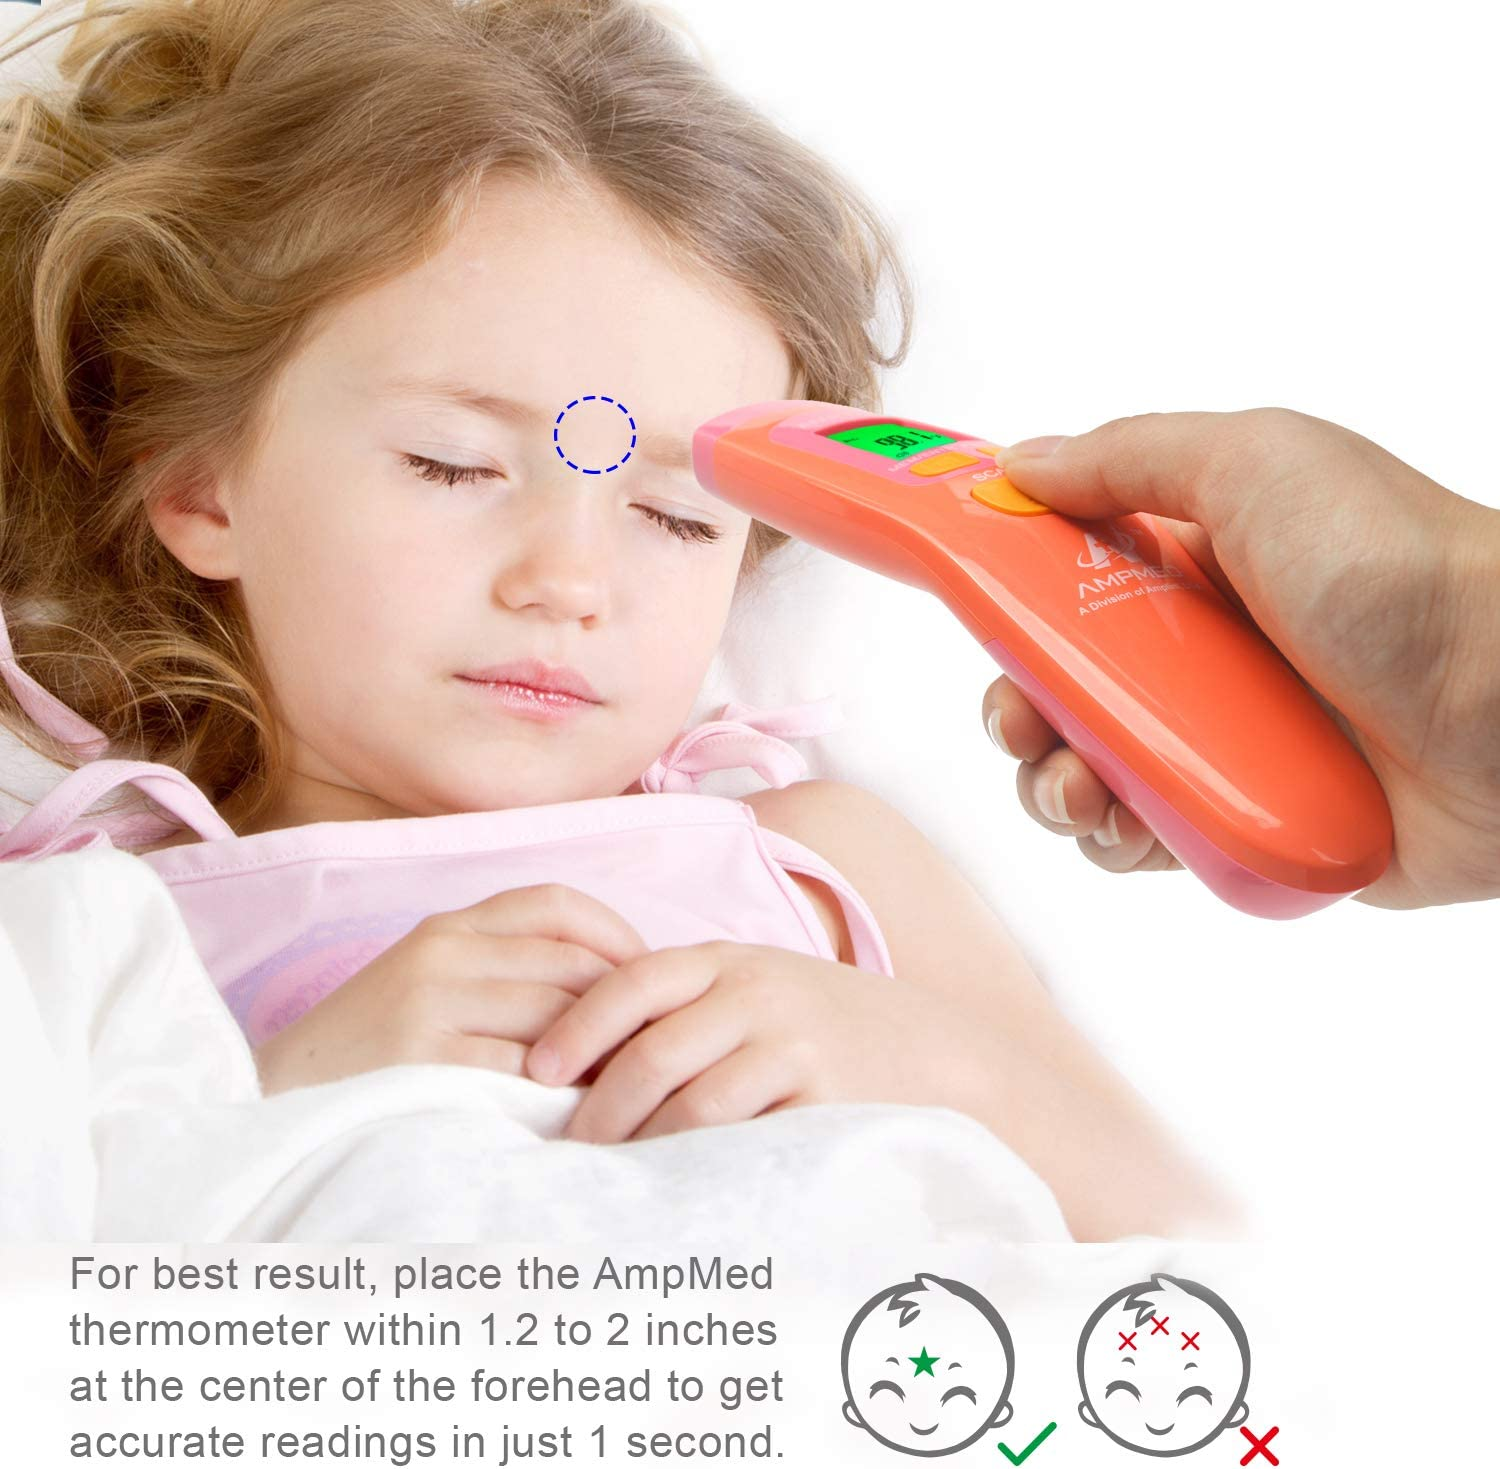 Temporal Artery Thermometer Baby Health Safety Forehead Head Illness Flu Sick